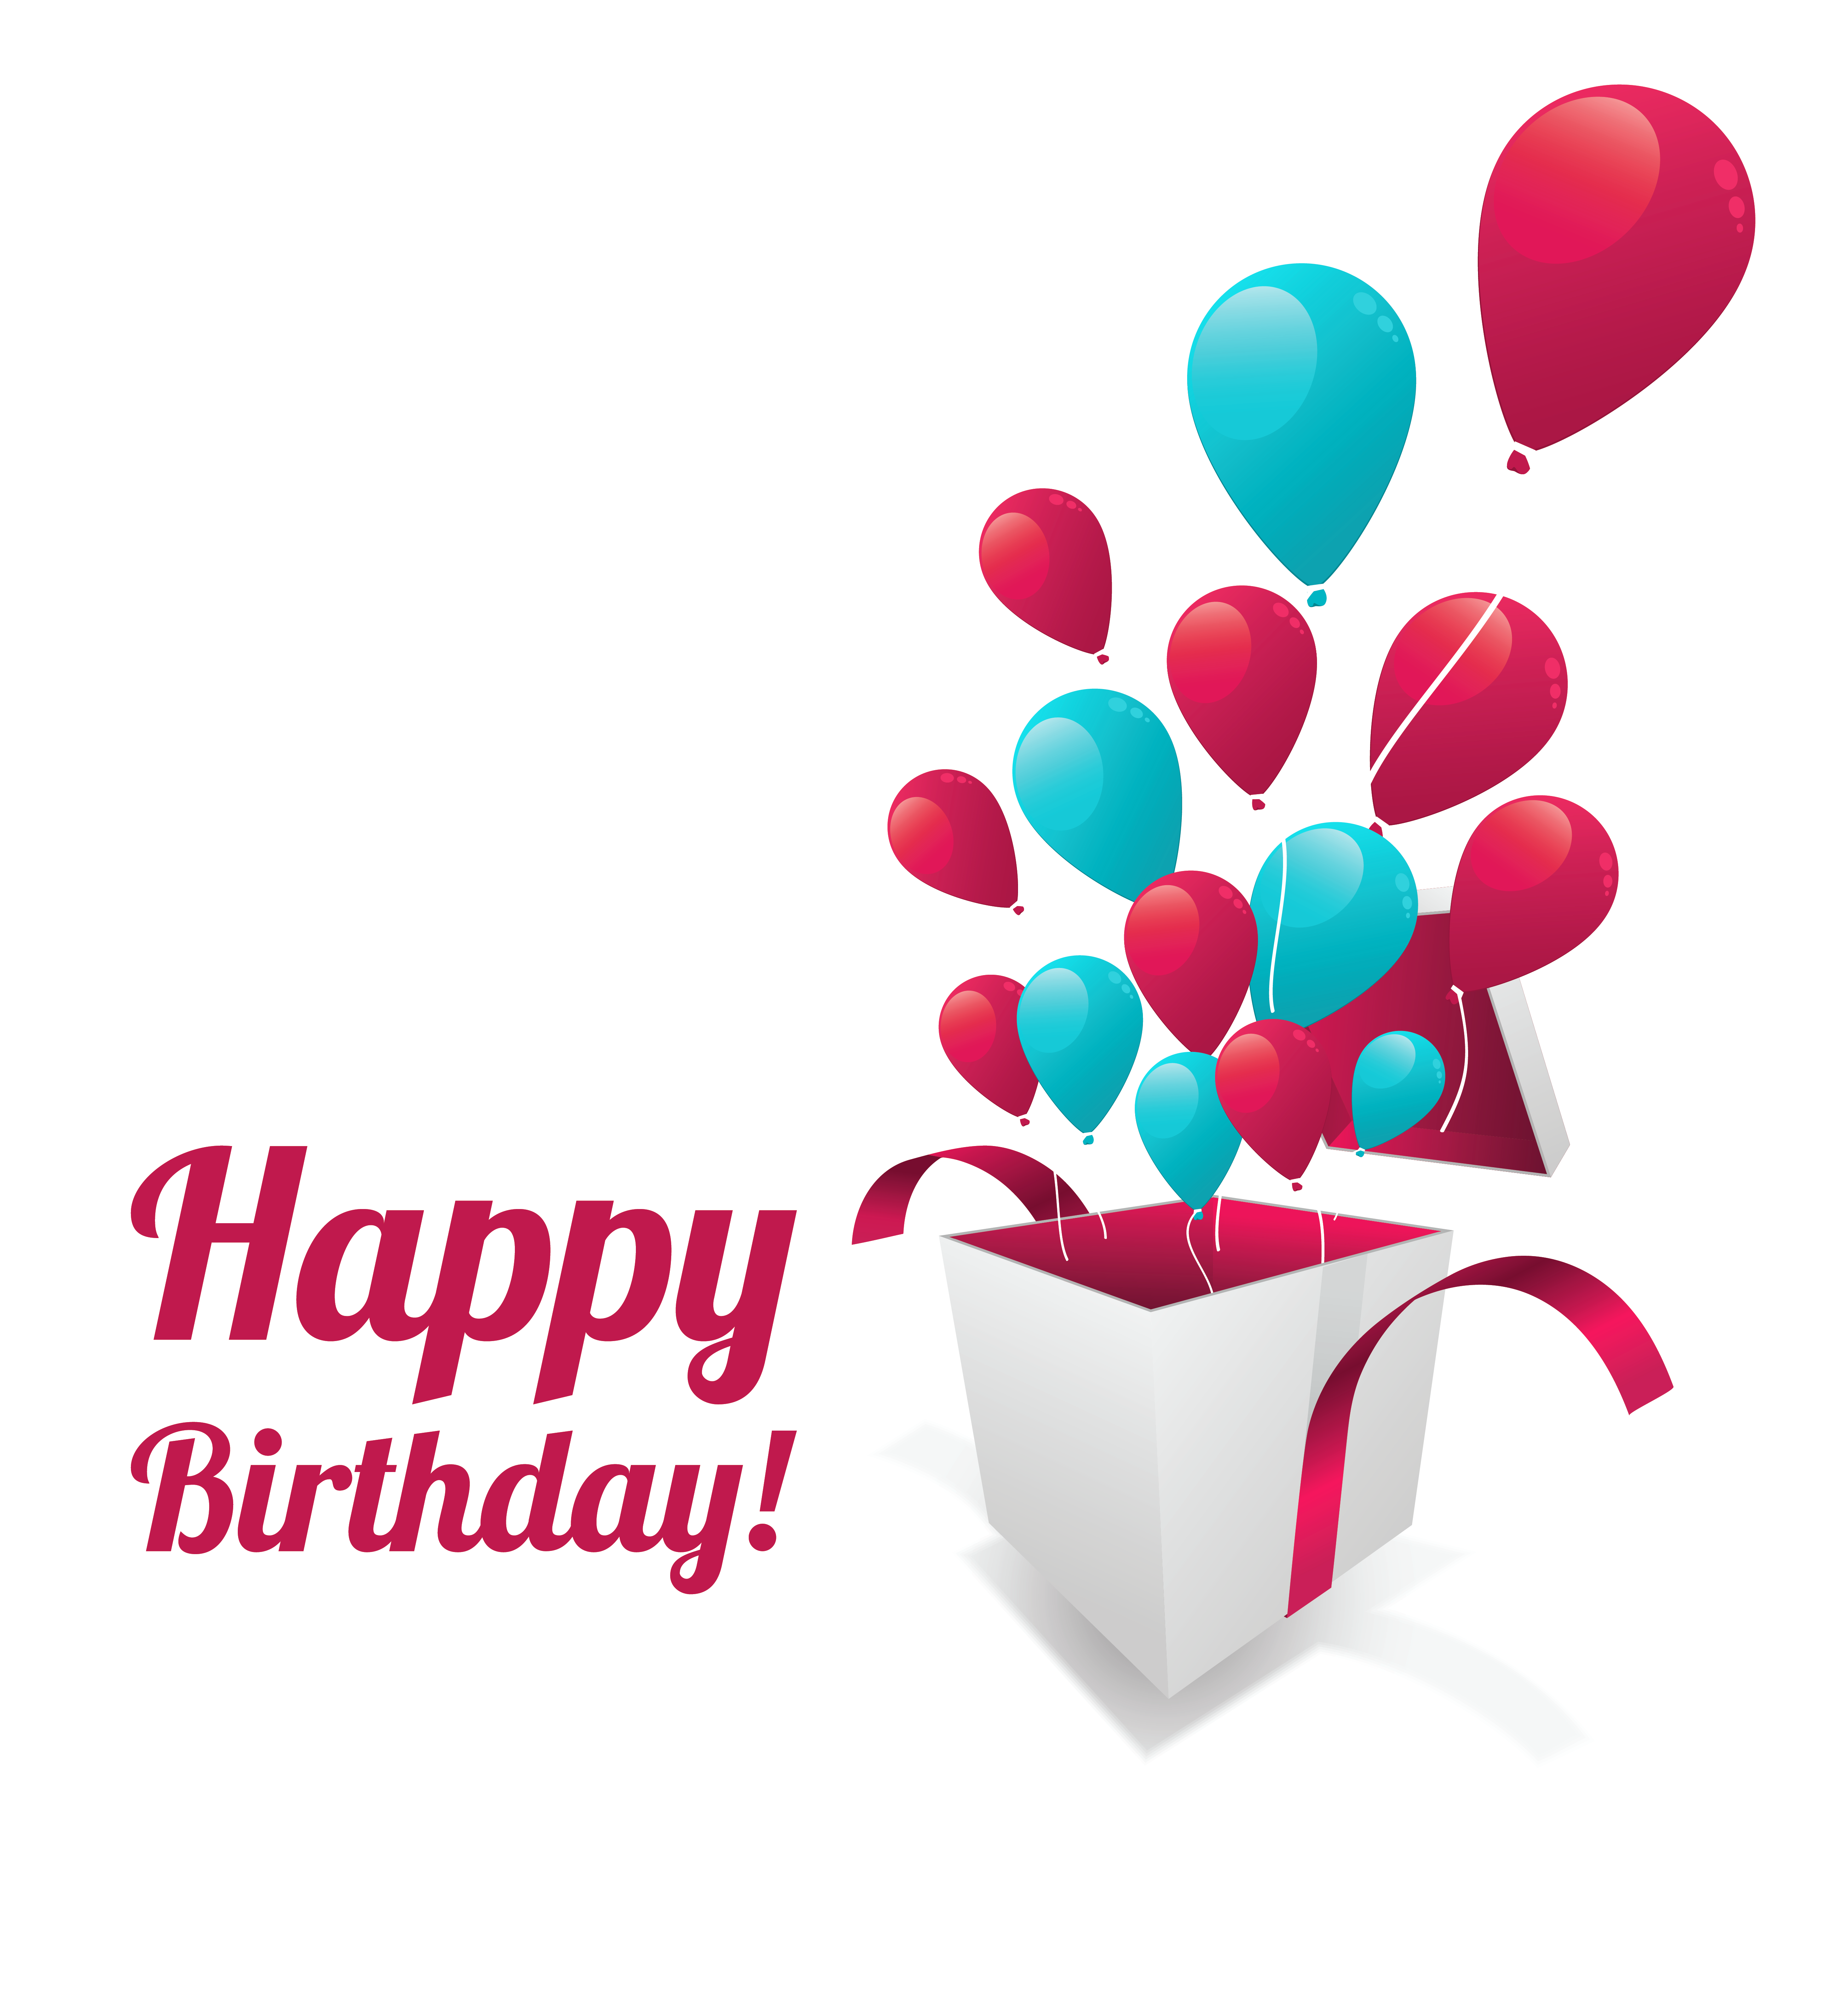 Sticker png download. Happy birthday text clipart